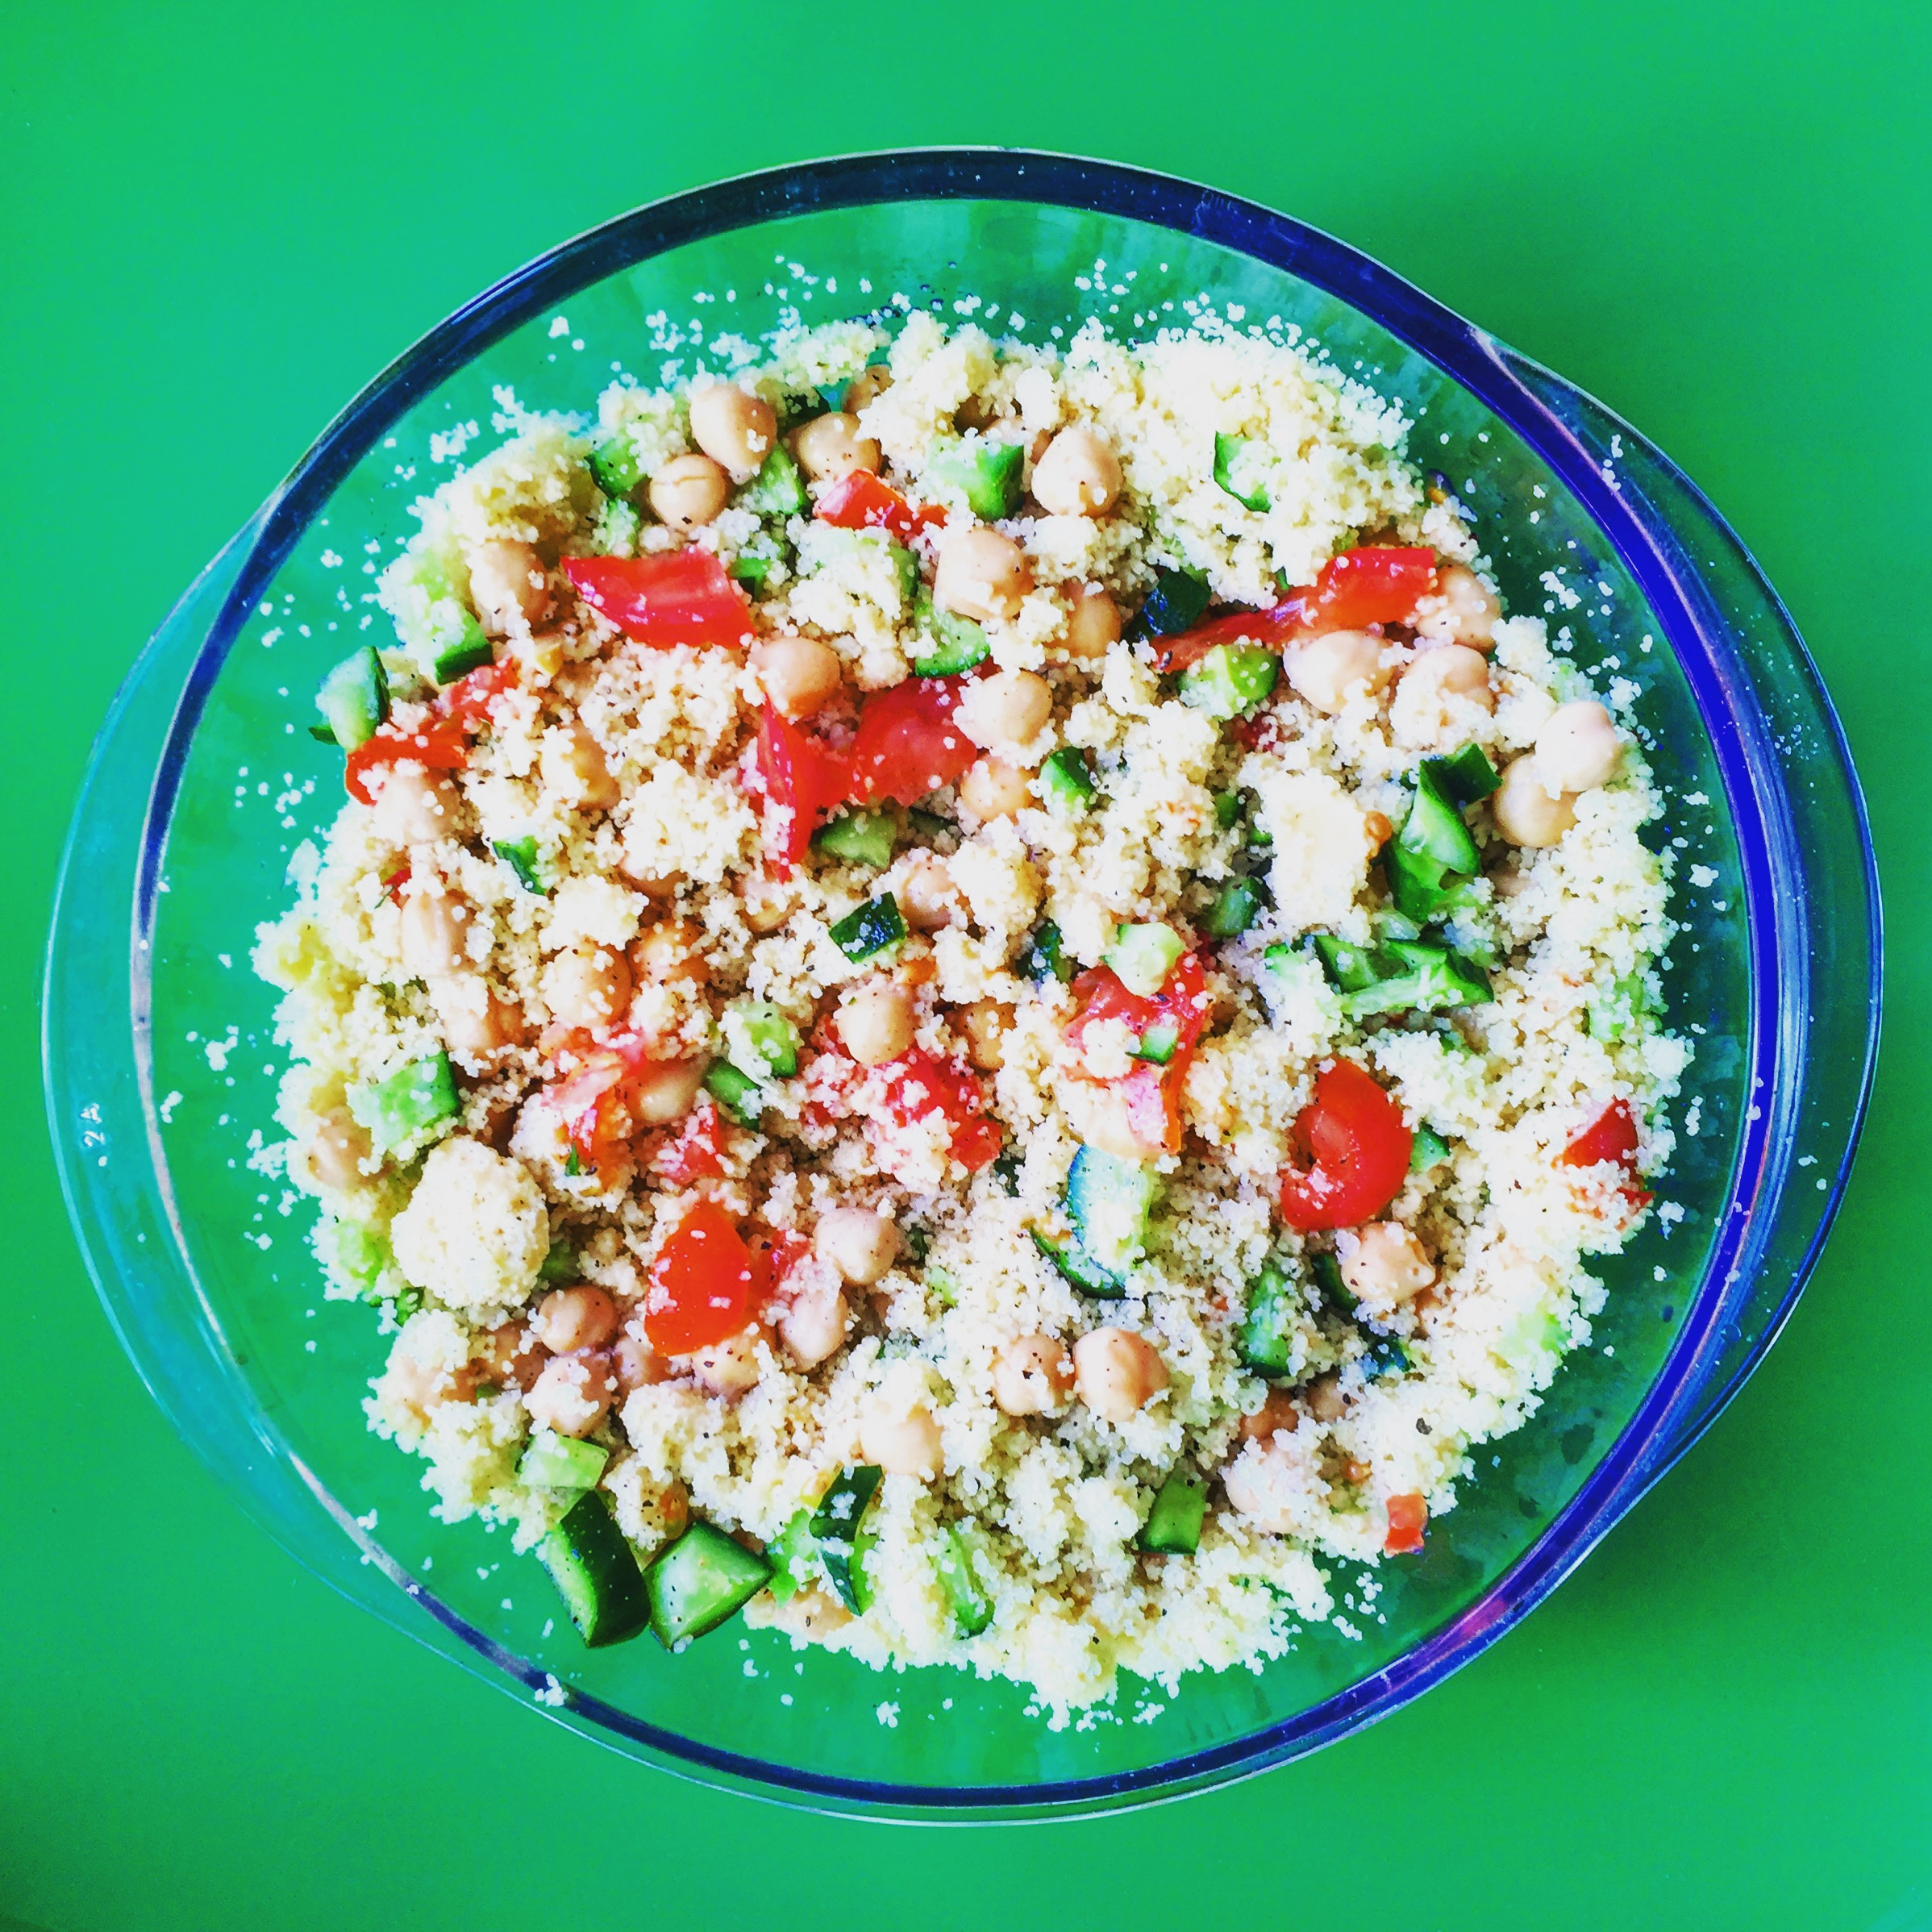 Chickpea and Couscous Delight